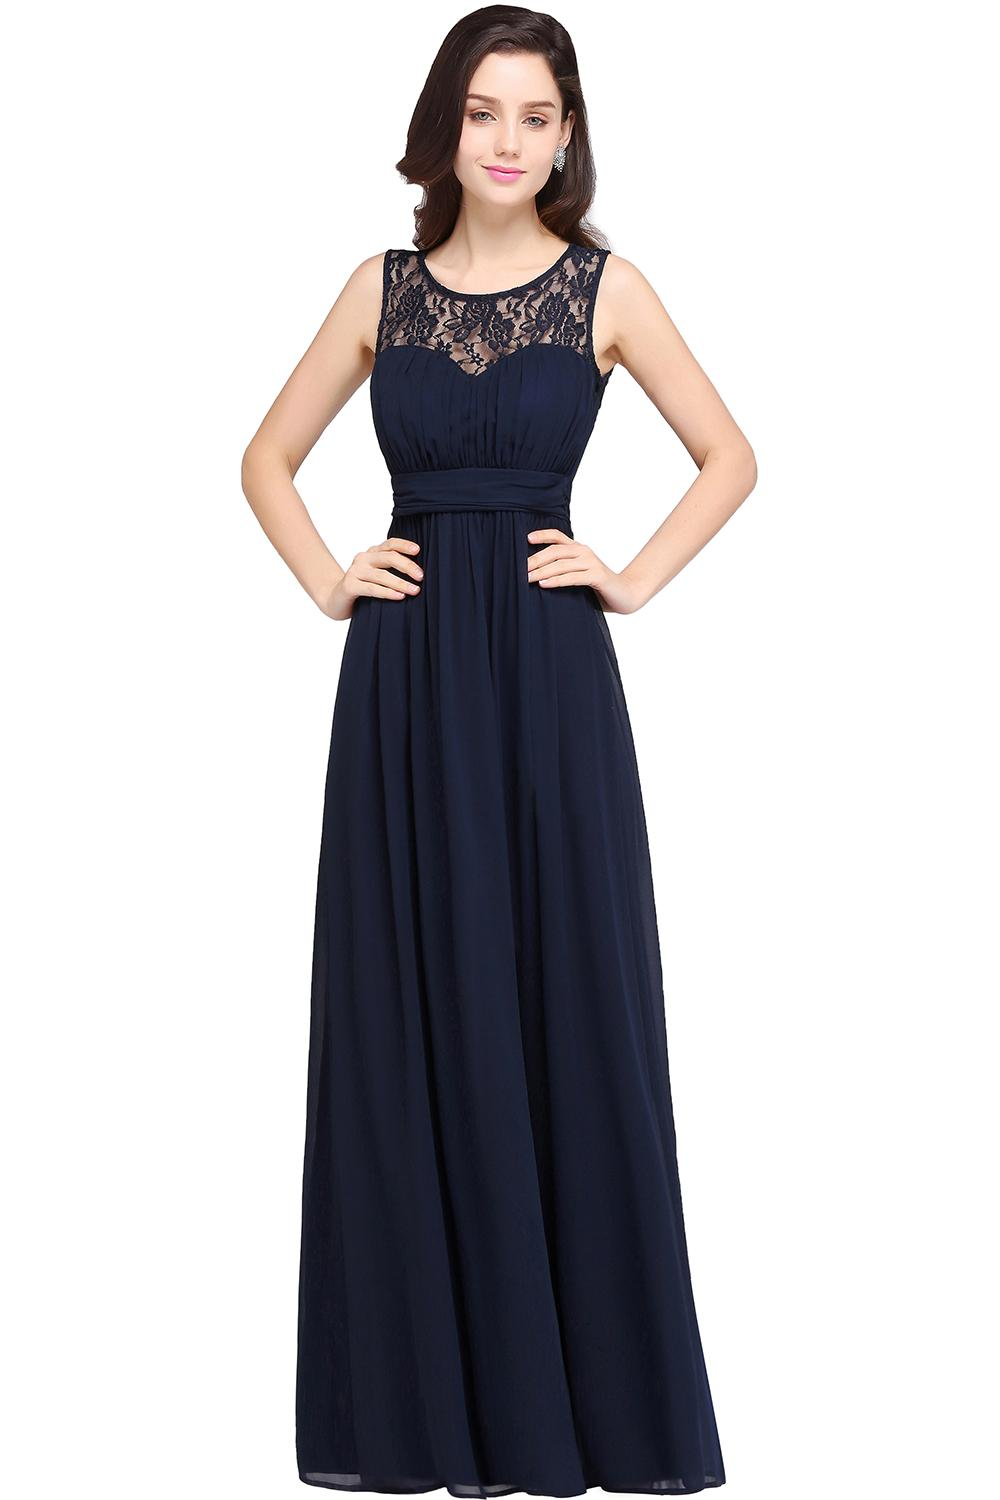 Babyonlinedress In Stock Real Image Lace Evening Dresses Cheap Multi Colors Illusion Bust Sashes Chiffon Prom Dresses LongCPS614